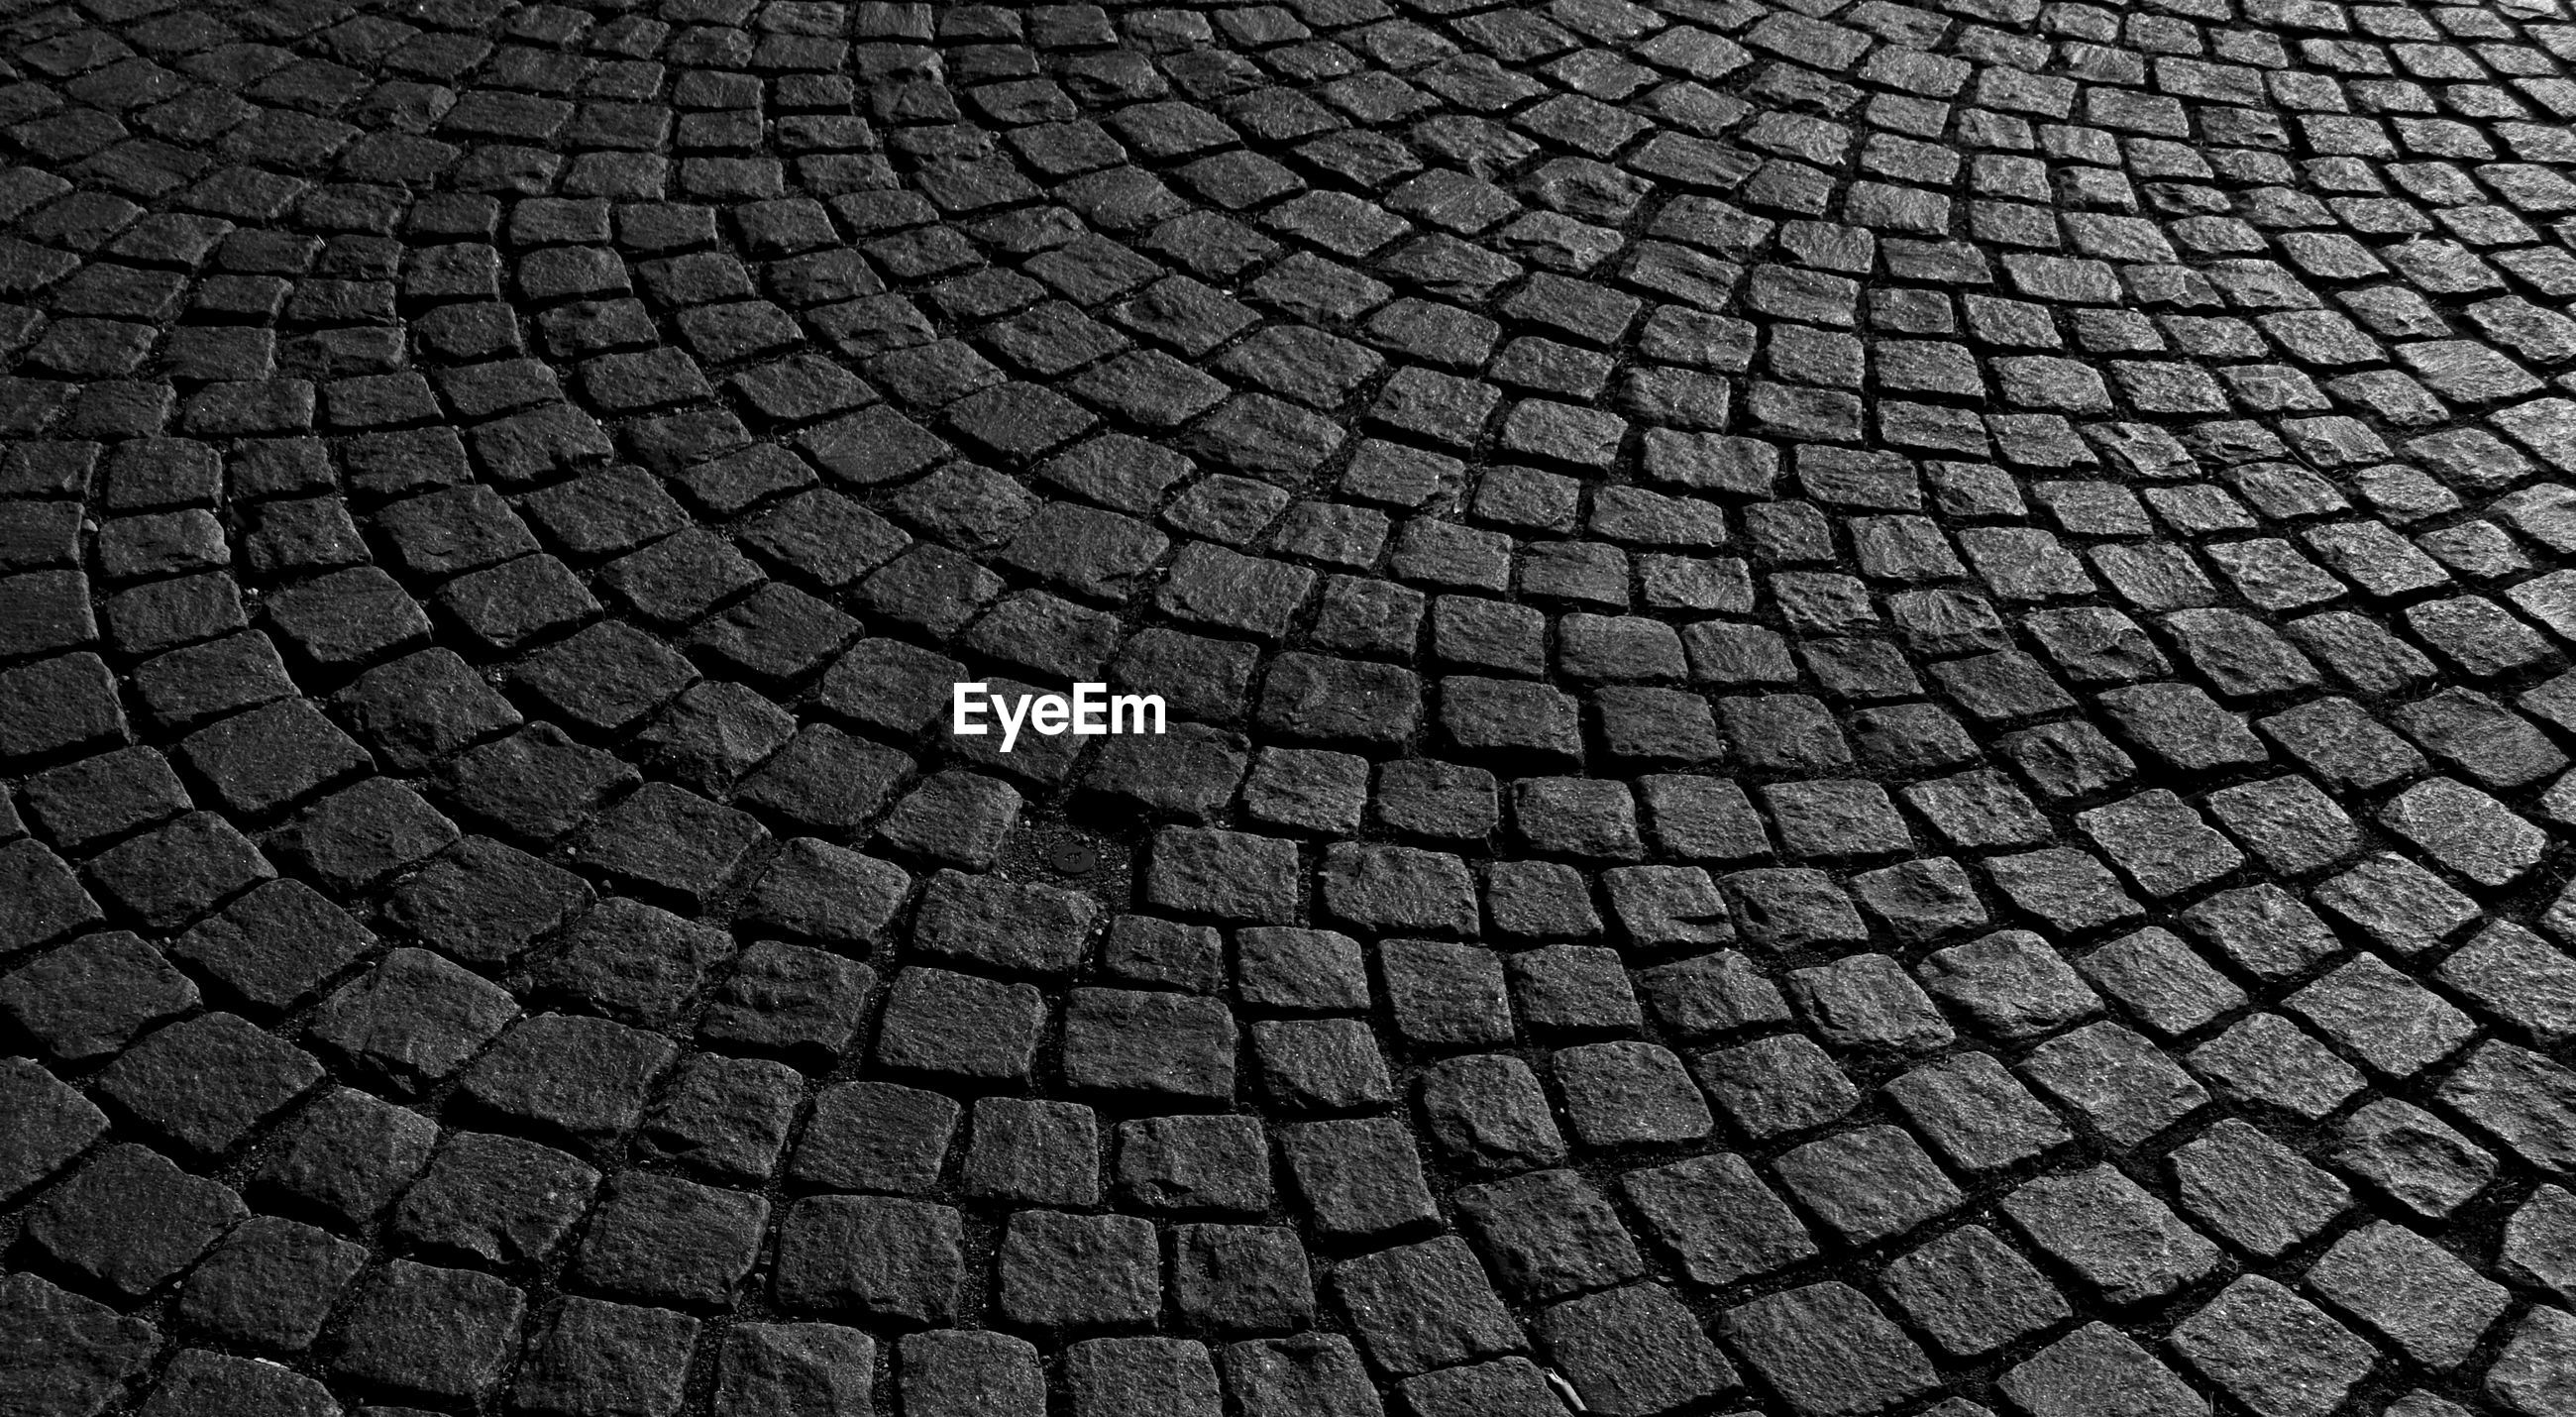 backgrounds, pattern, full frame, textured, cobblestone, no people, close-up, shape, street, repetition, design, geometric shape, outdoors, high angle view, city, day, gray, circle, black color, stone, concentric